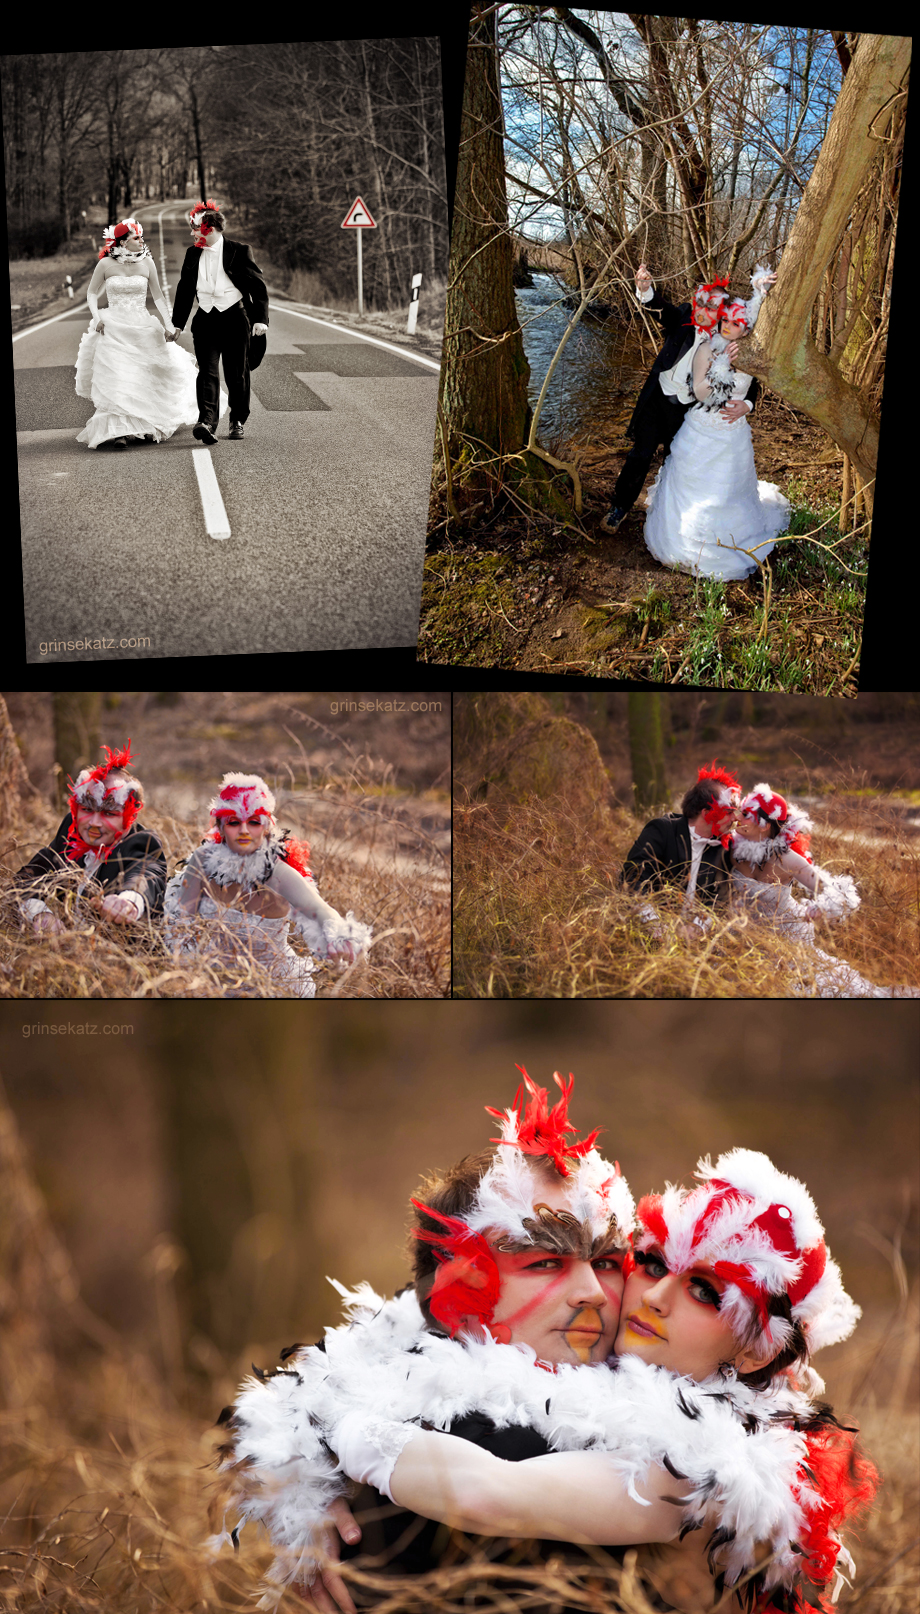 Trash-the-dress-Hochzeitsfotos-uckermark-grinsekatz